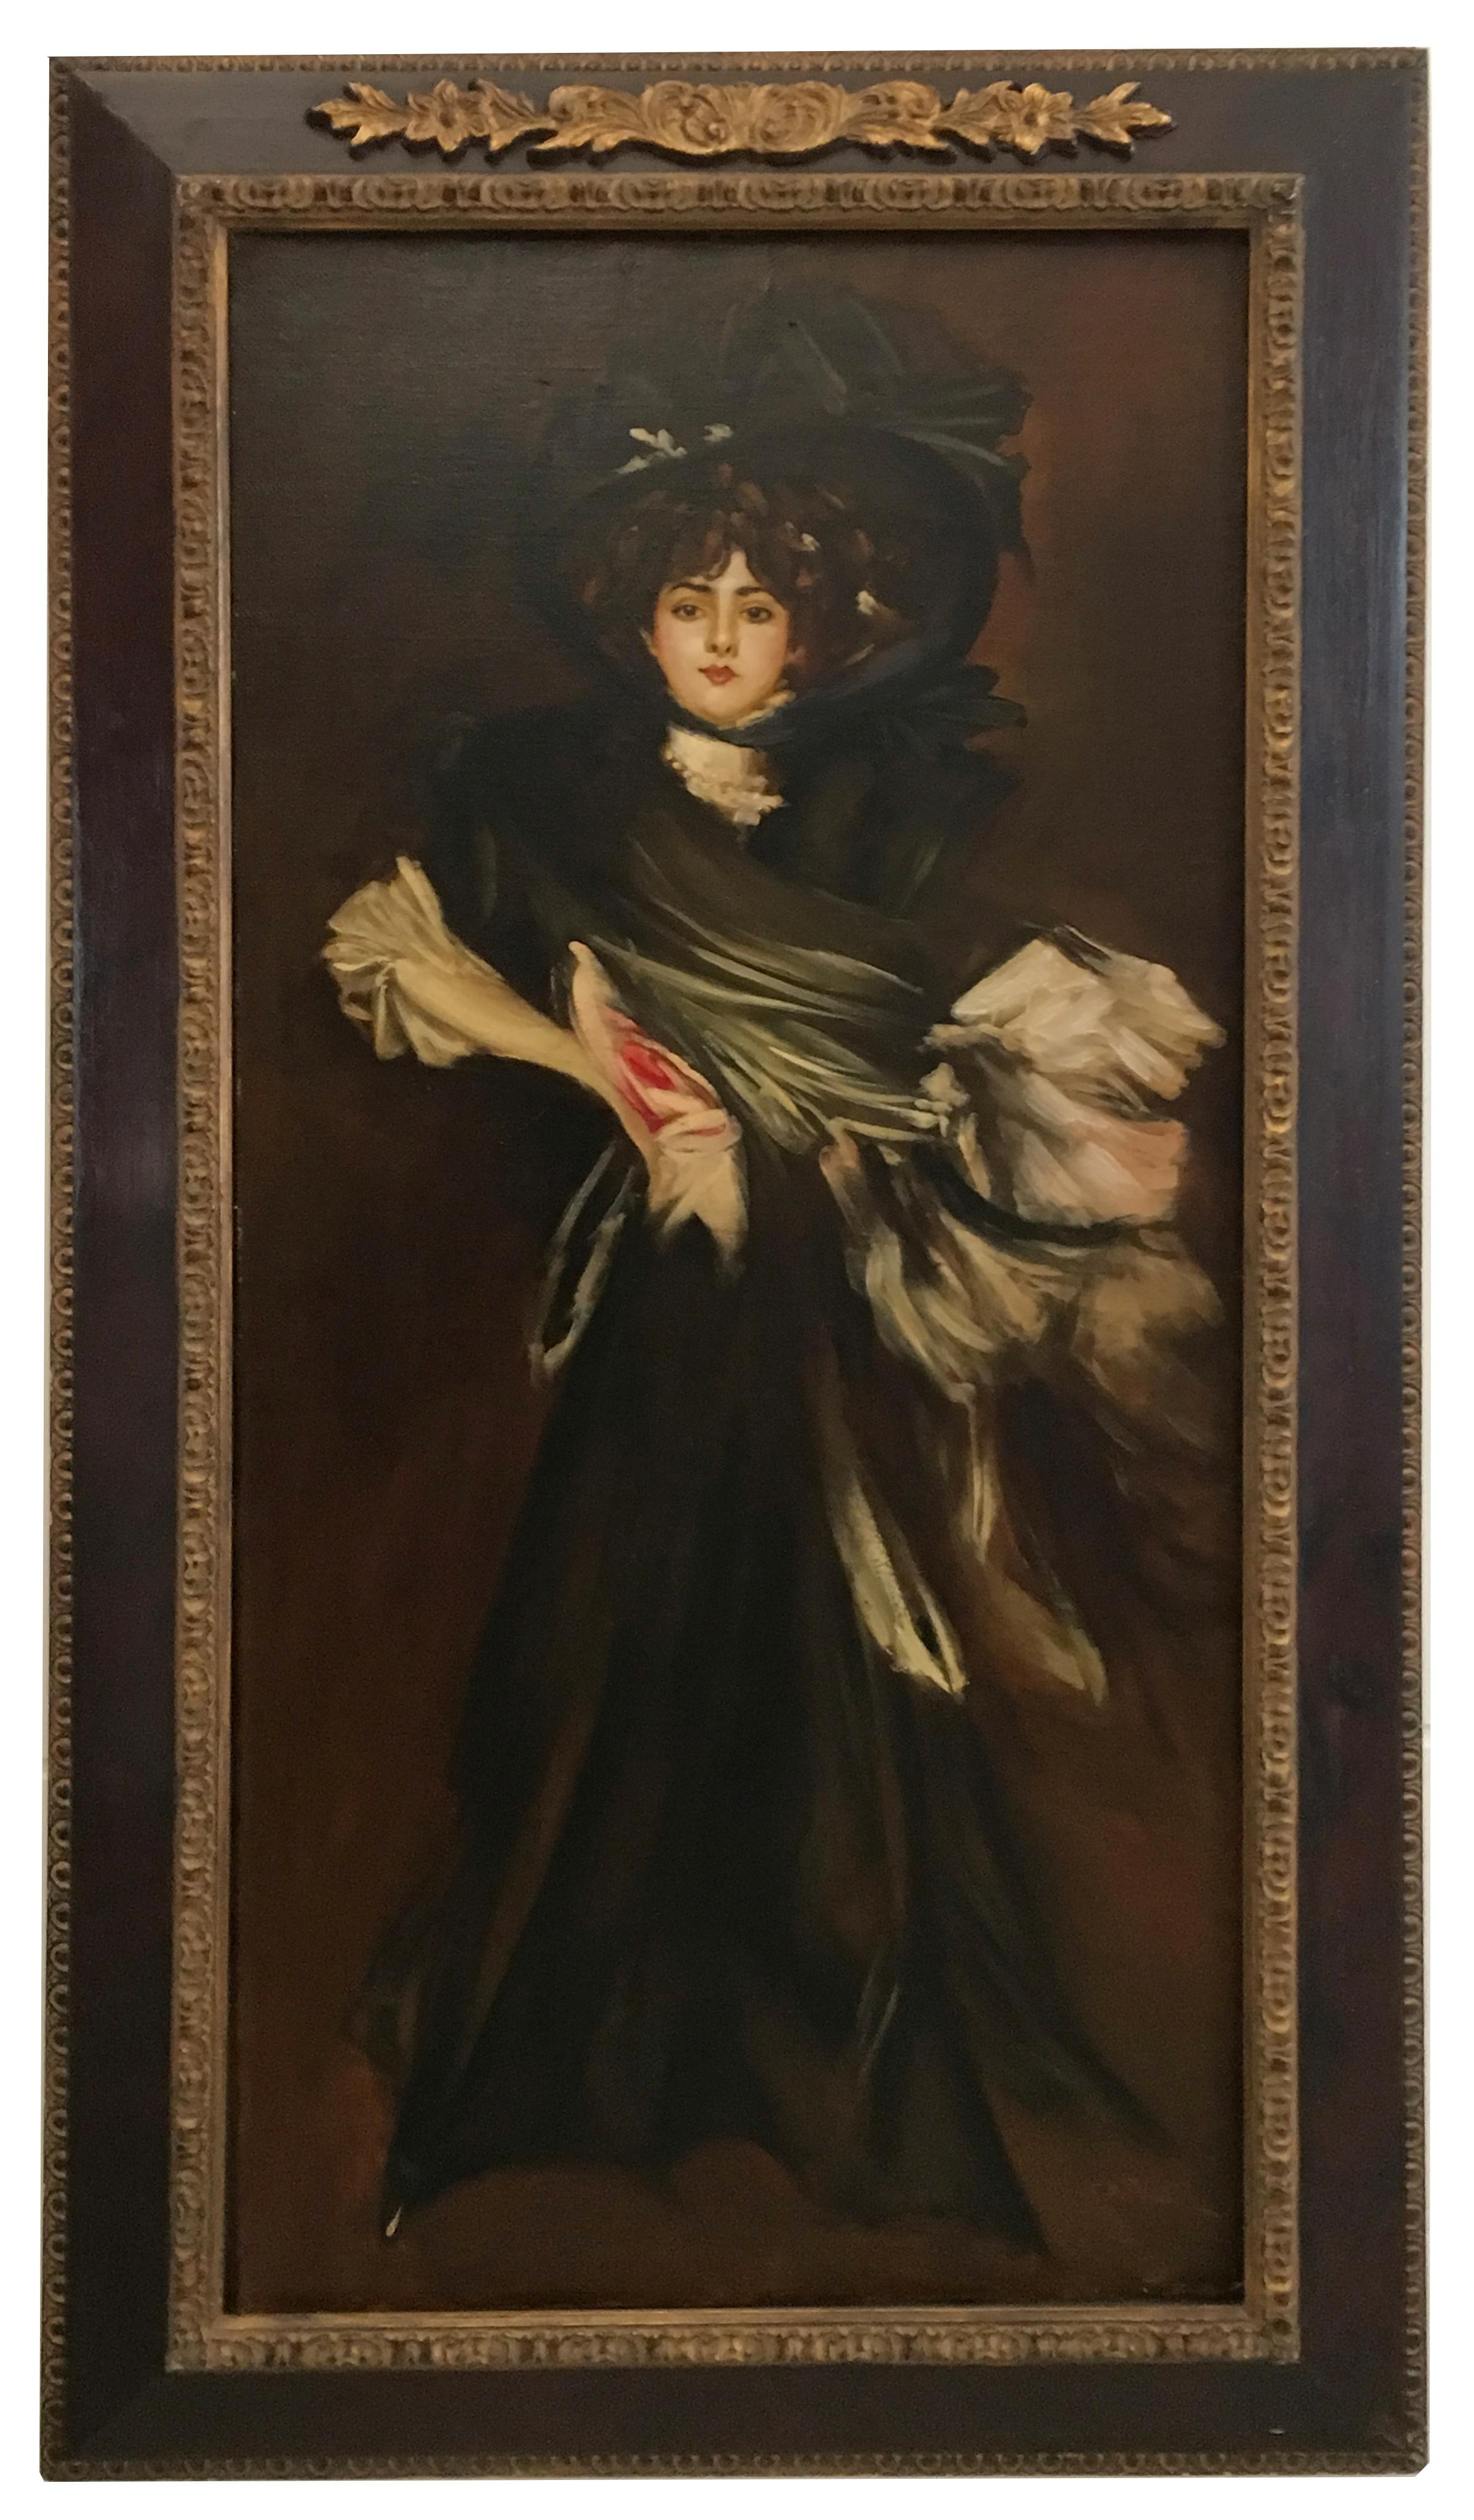 LADY IN BLACK-In the Manner of G. Bodini-Italy figurative oil on canvas painting